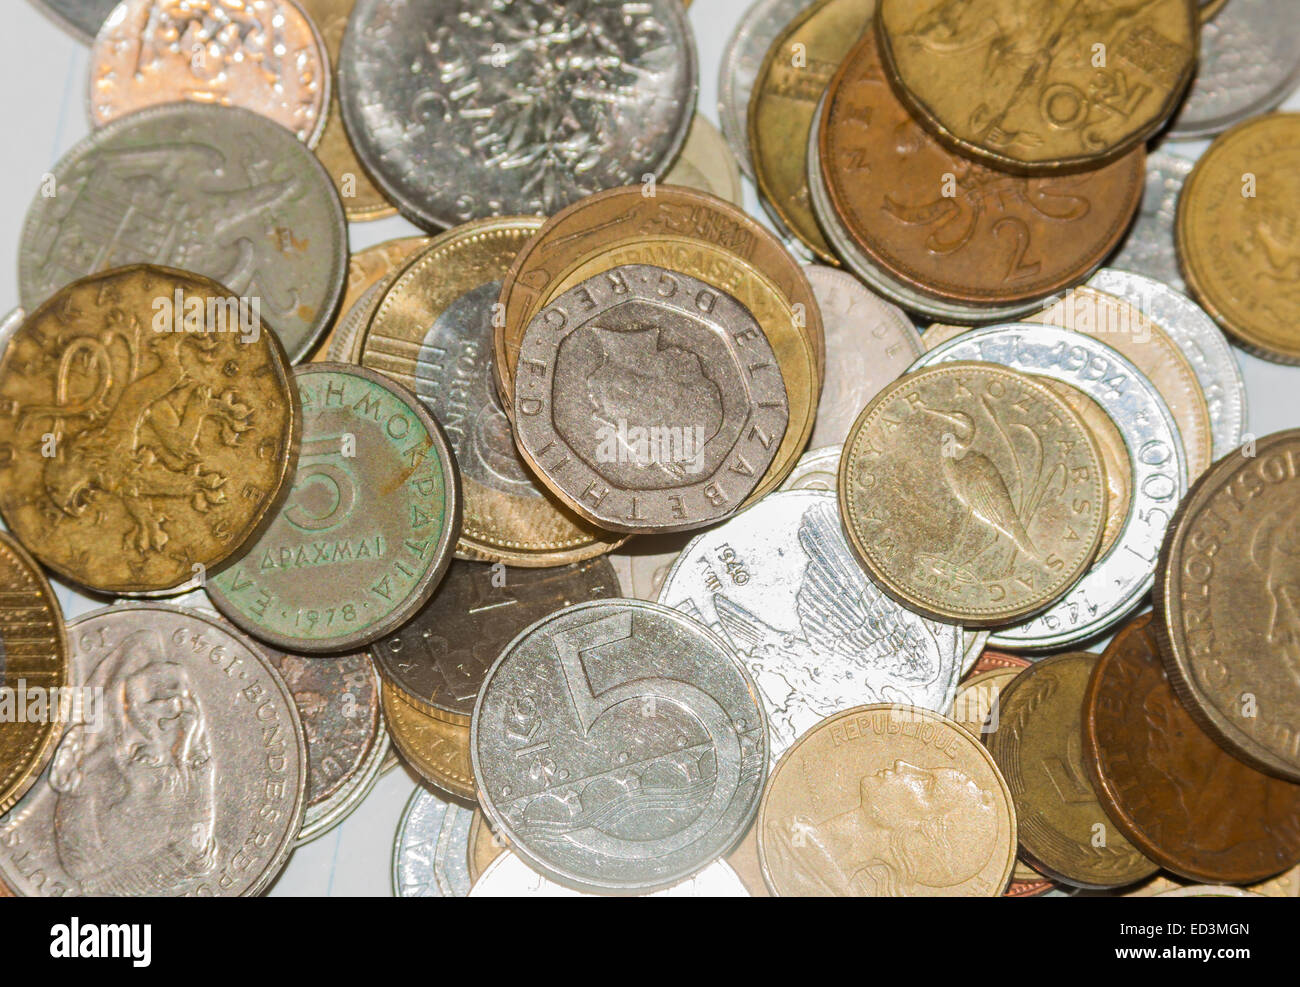 Old Europe Coins.  lire drachmas francs pounds marks - Stock Image